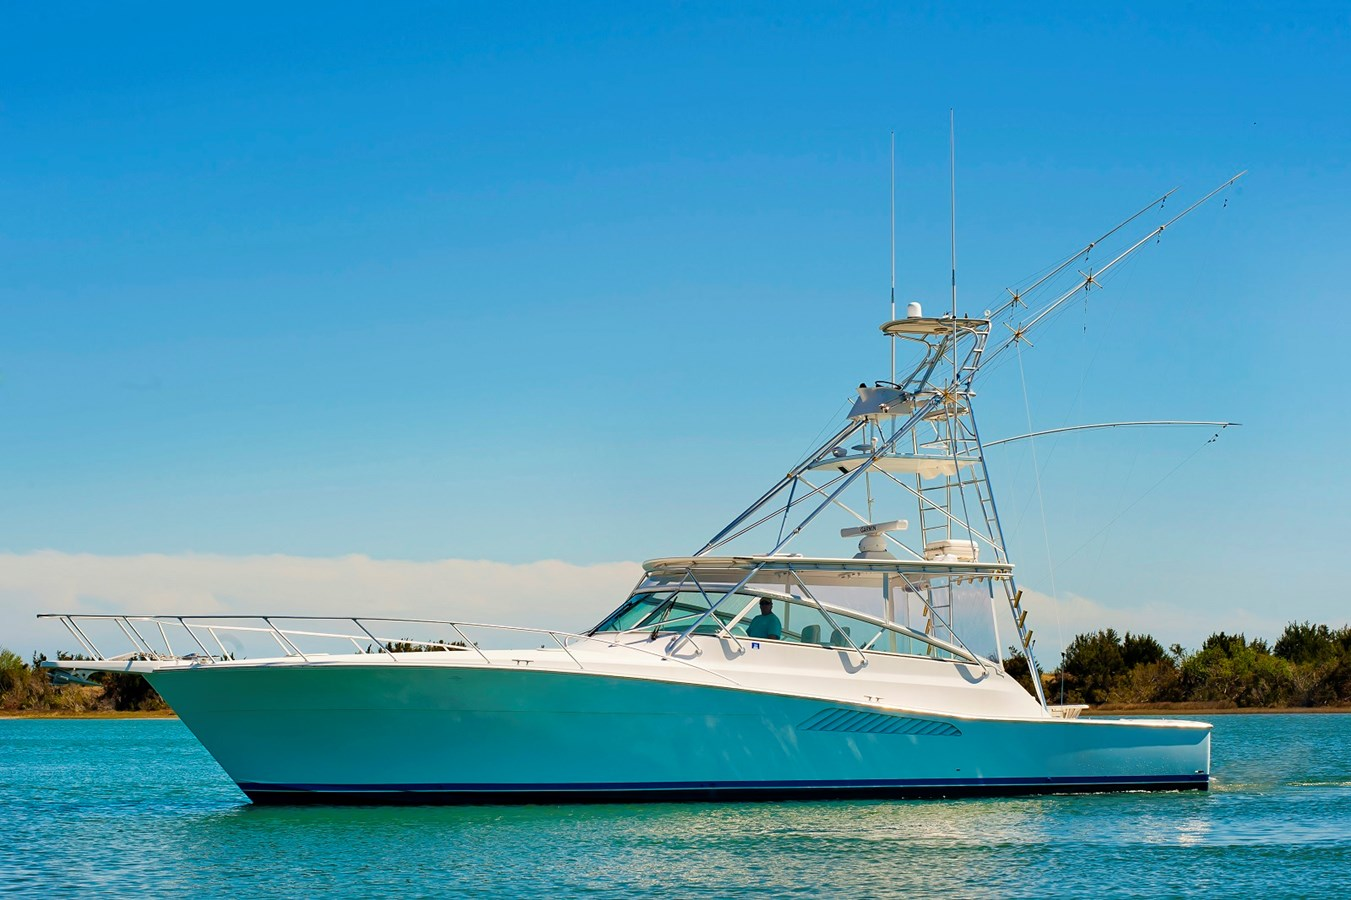 ReelPirate001 - 50 VIKING For Sale